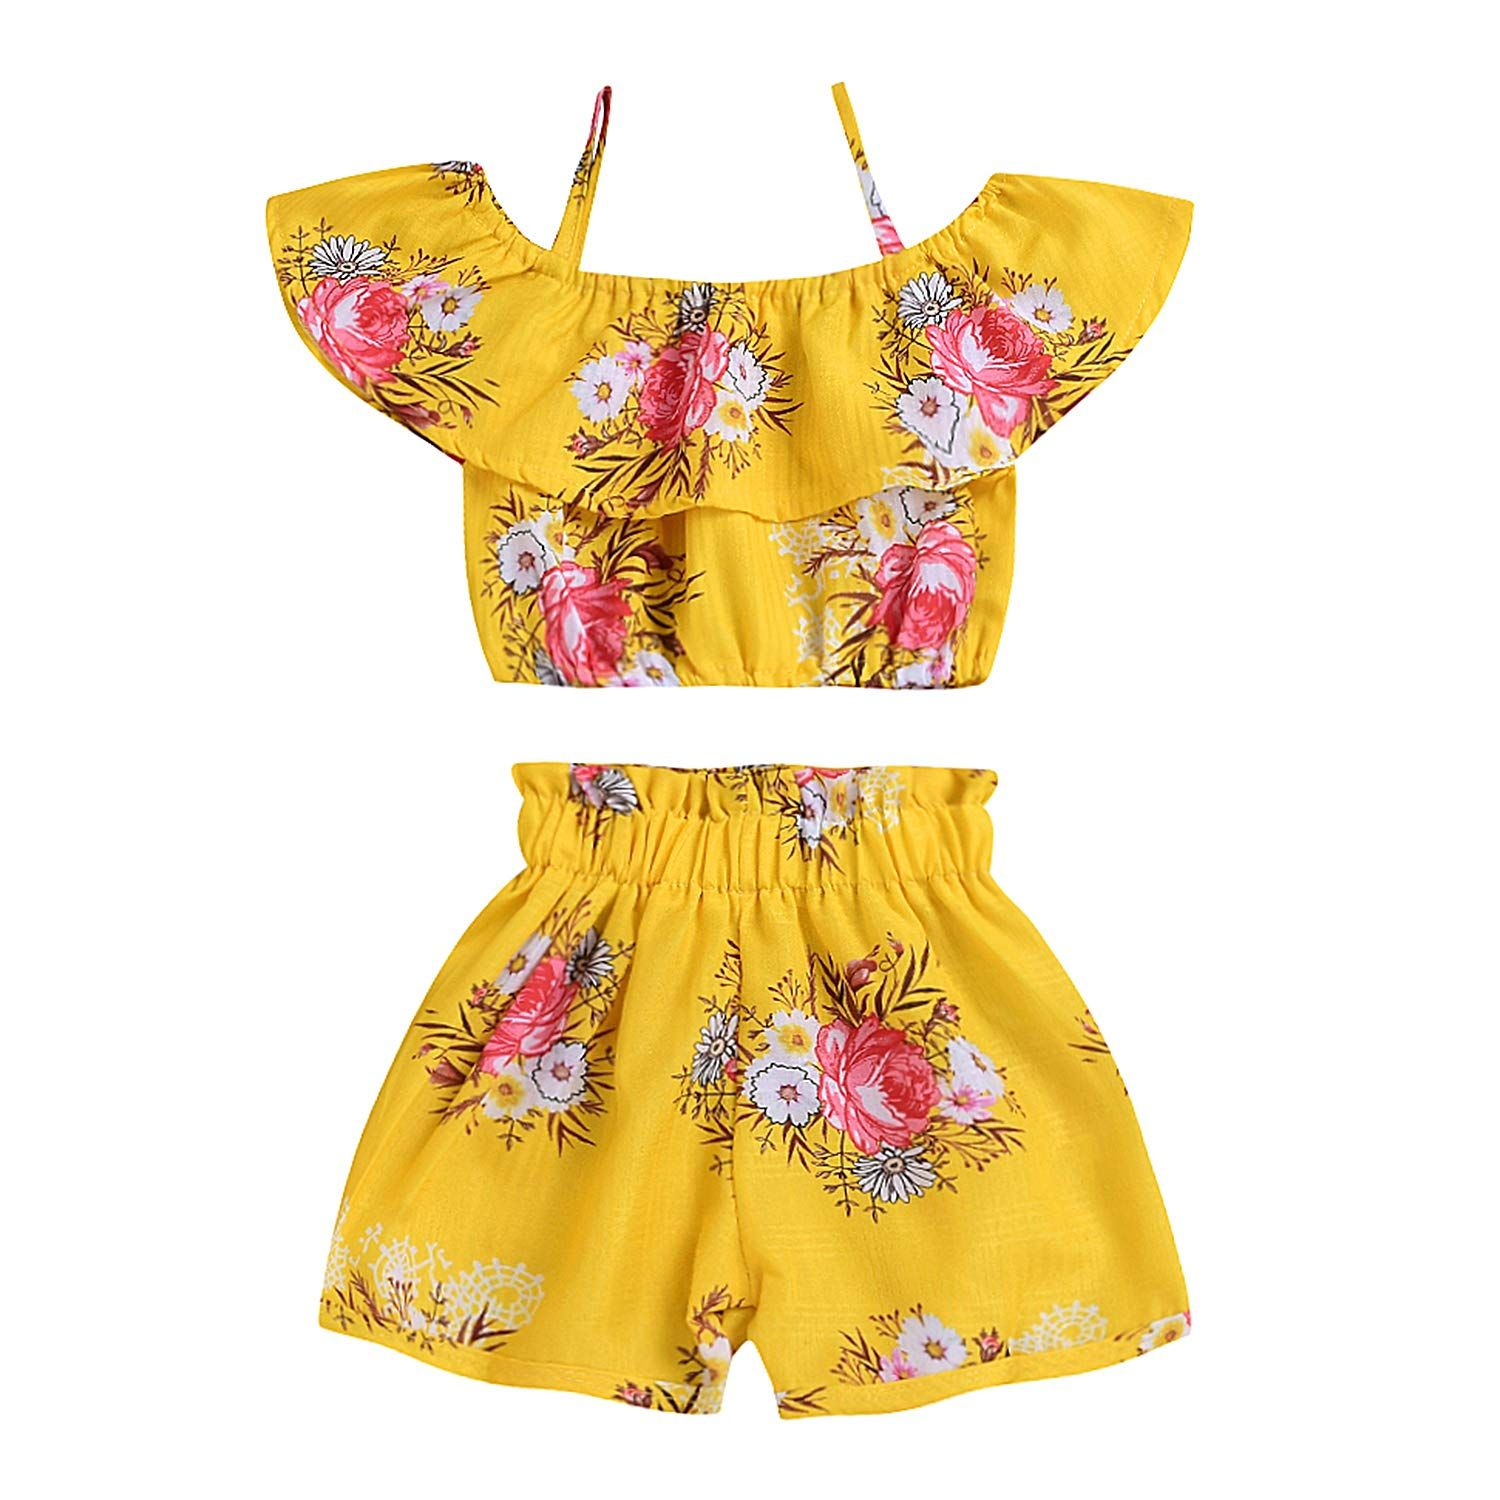 f29d558730ad Toddler Baby Girls Floral Spaghetti Strap Ruffled Tops Shorts Outfits  Clothes 2pcs Set Yellow Floral 12 Years Old   You can find out even more  information ...